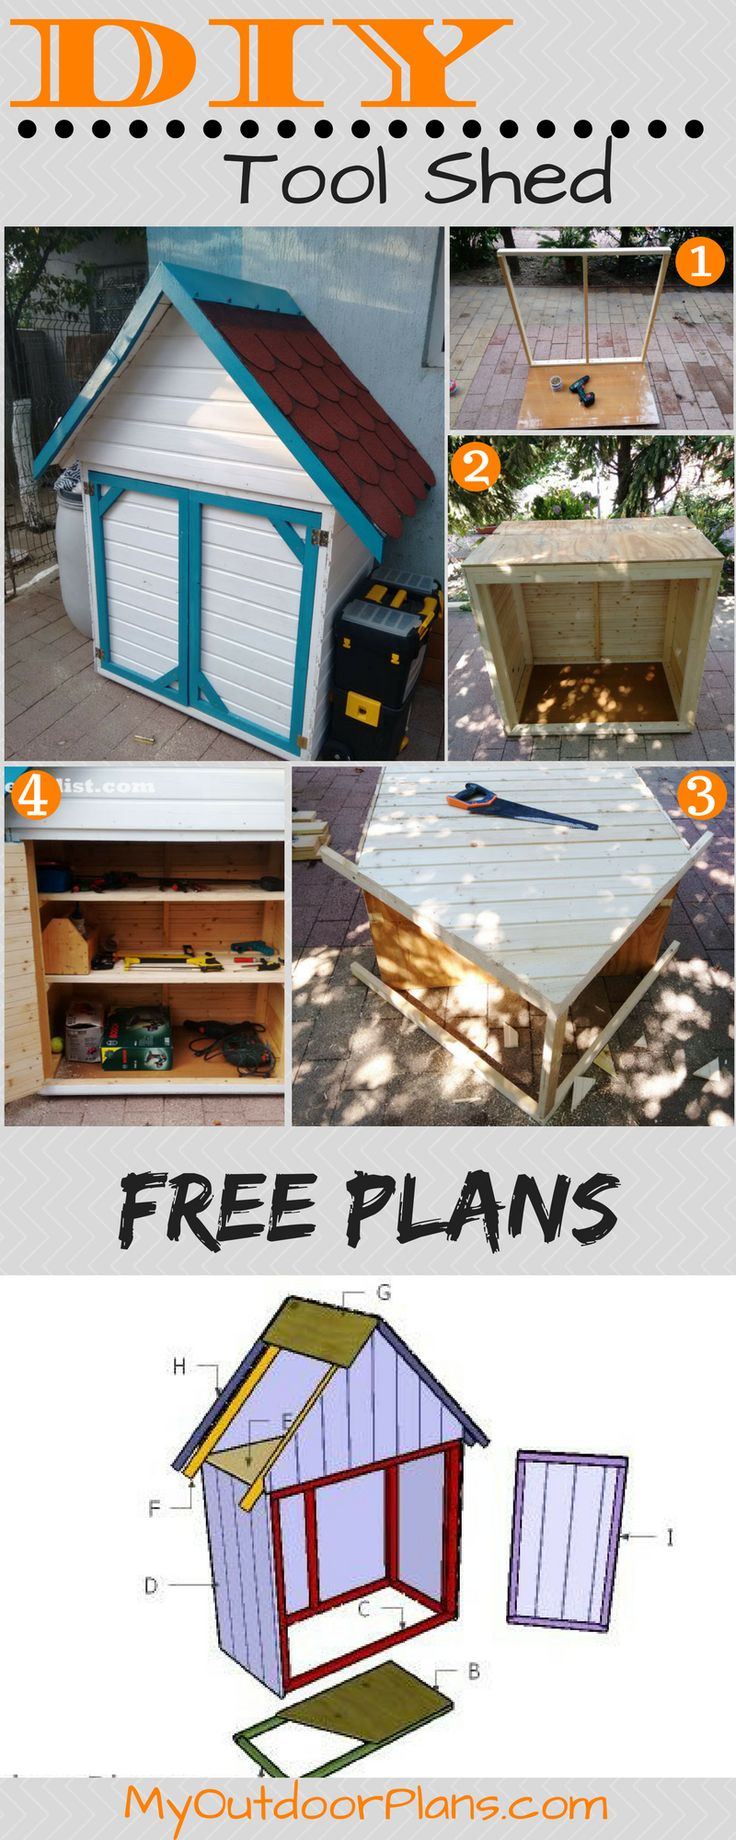 how to build a small tool shed